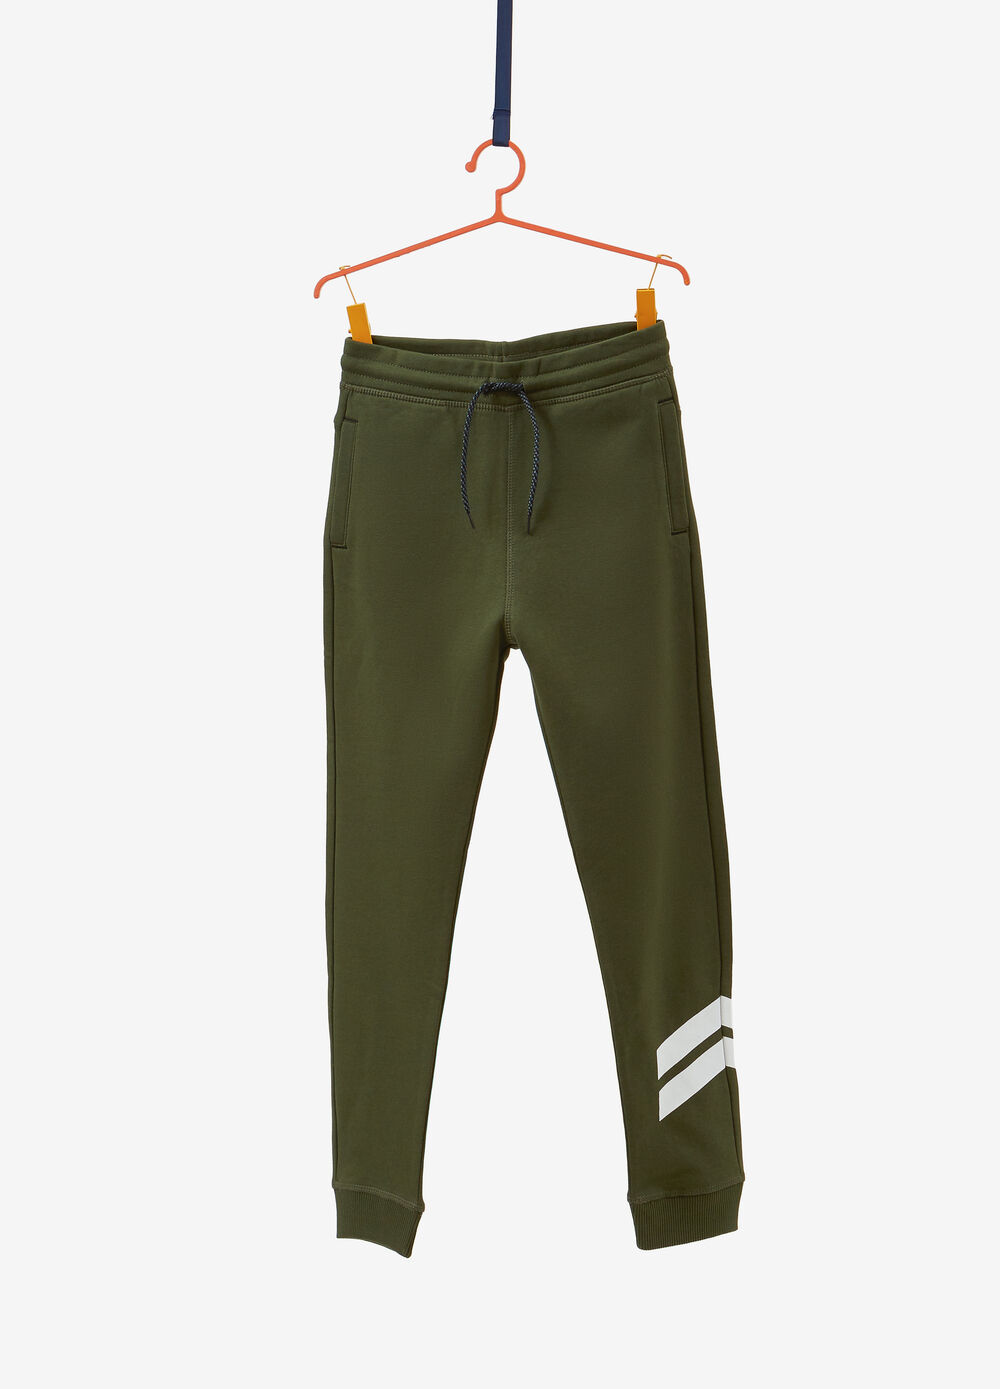 Cotton blend trousers with drawstring